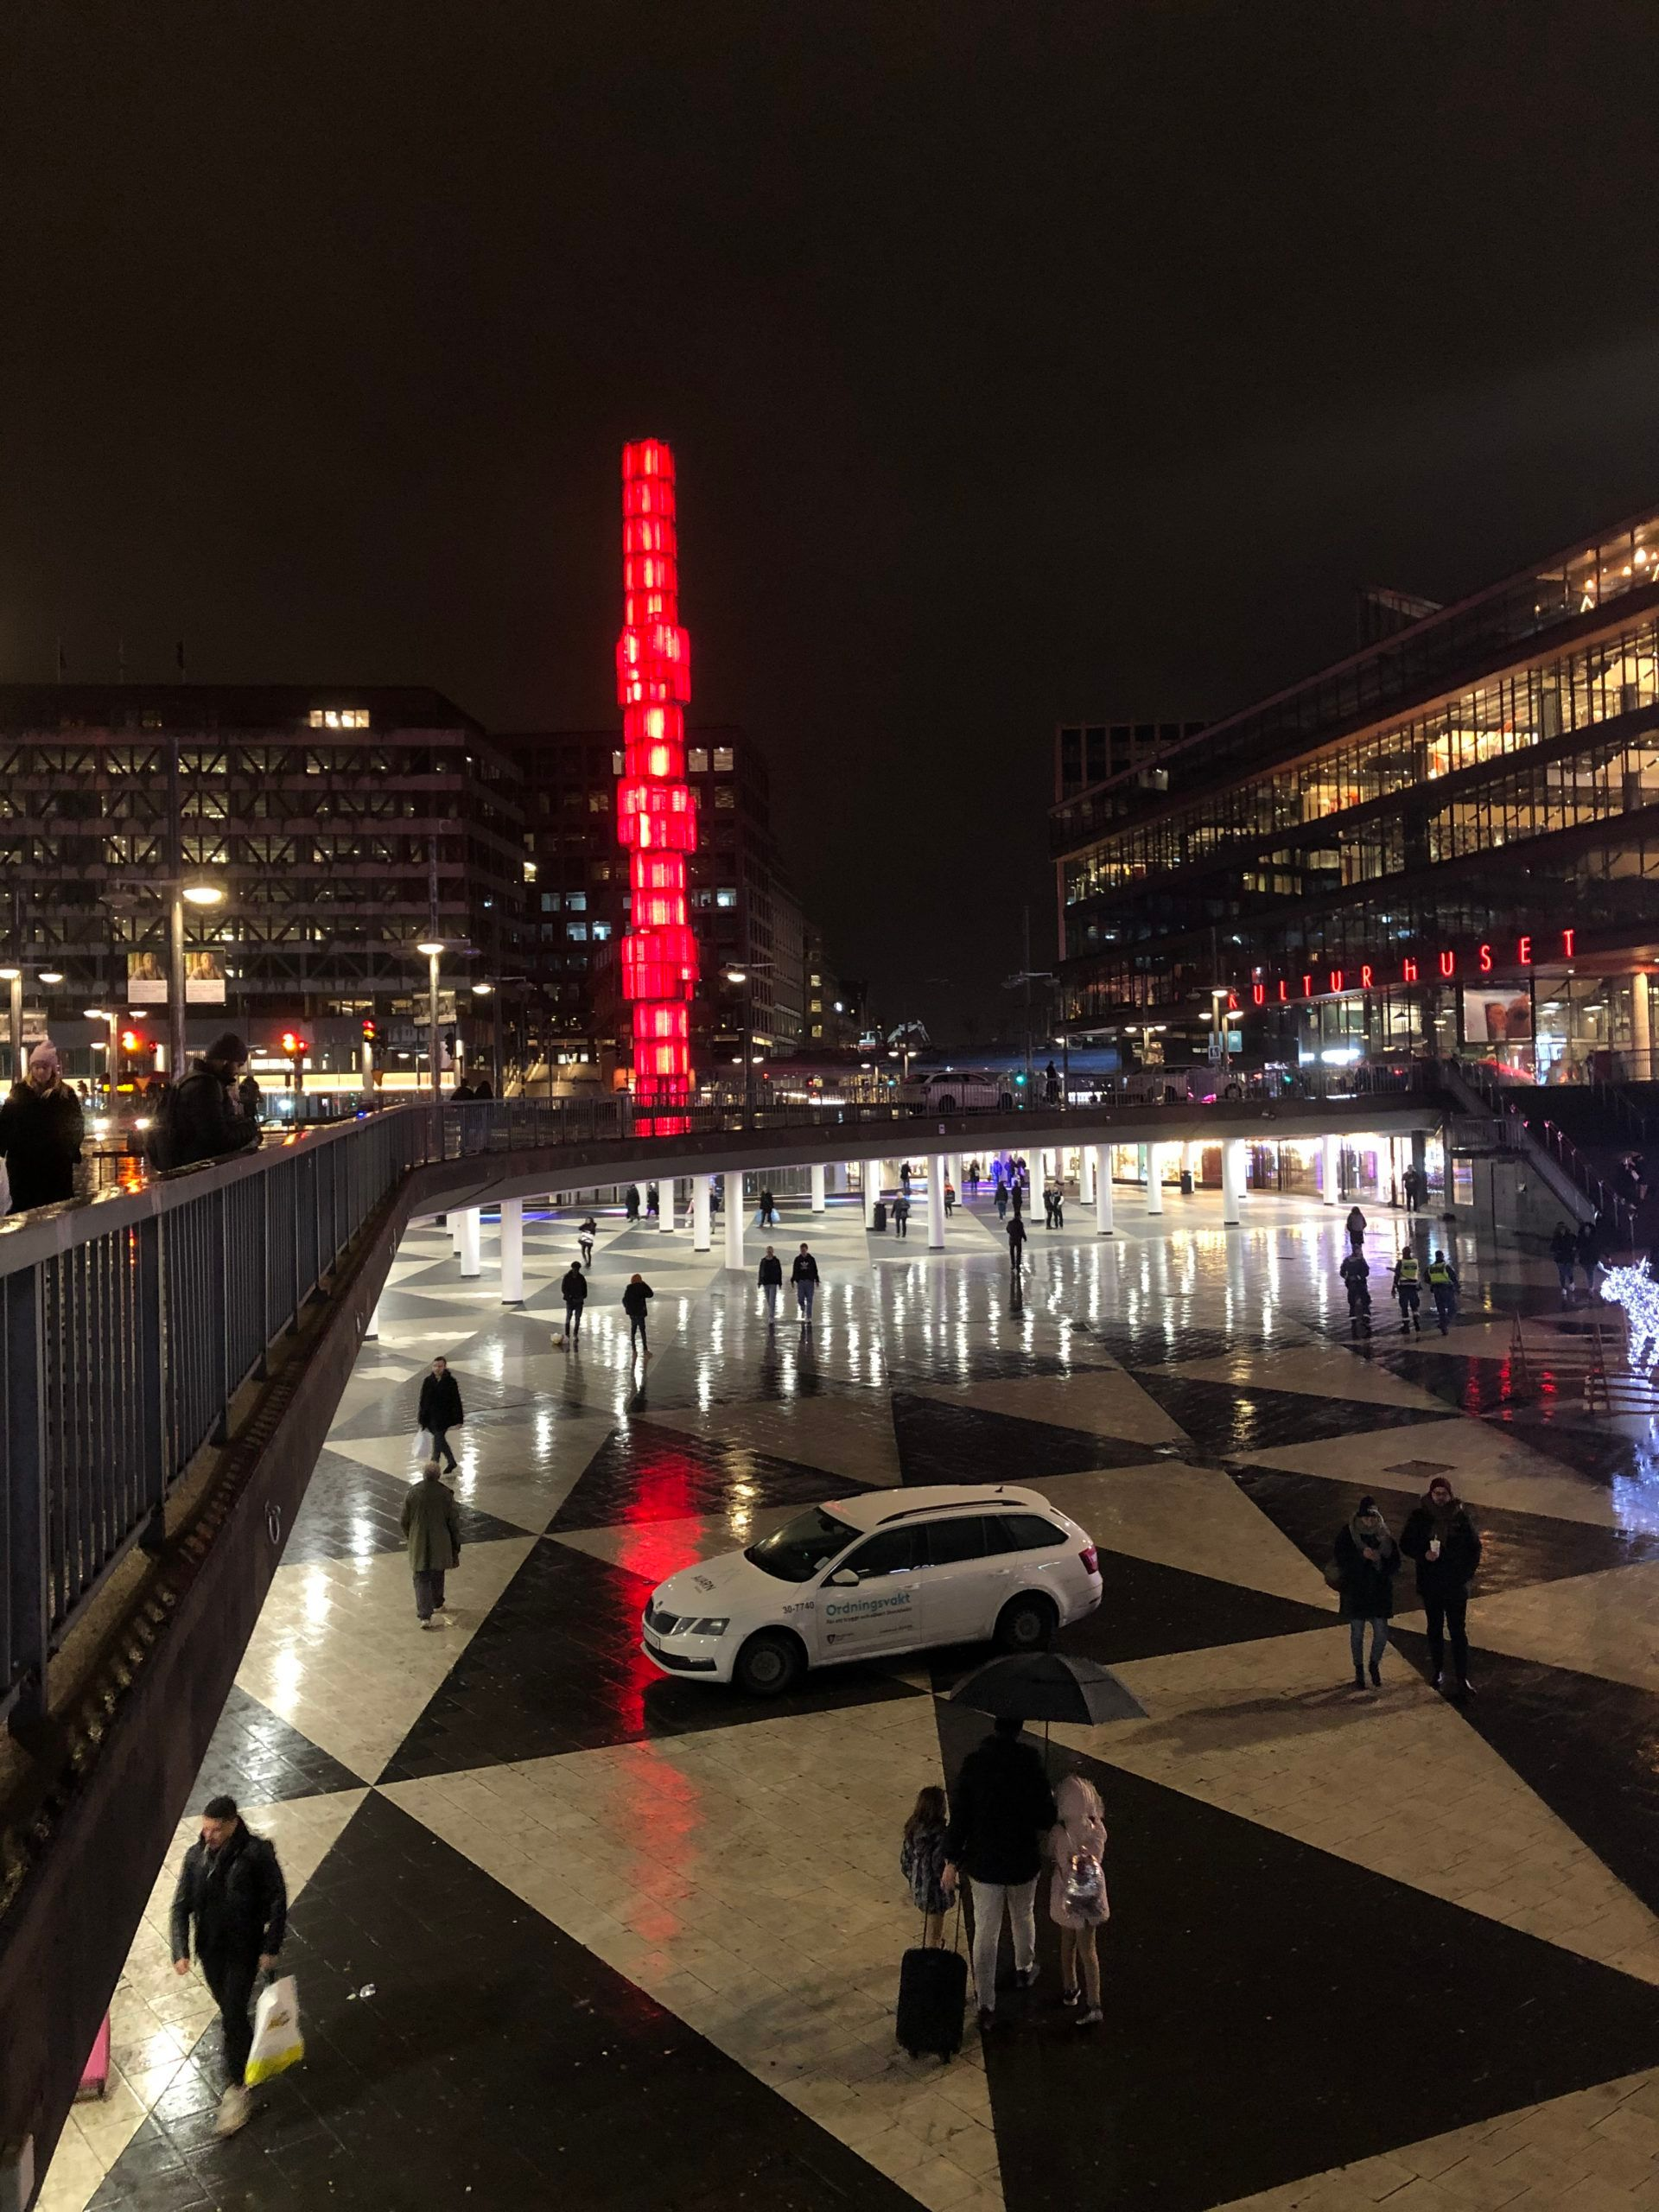 A tall tower building lit fully in red lights onto a shiny, black and white triangle designed pavement, behind a bridge reflecting scattered lights. Pedestrians walking under the bridge and a car parked in front.